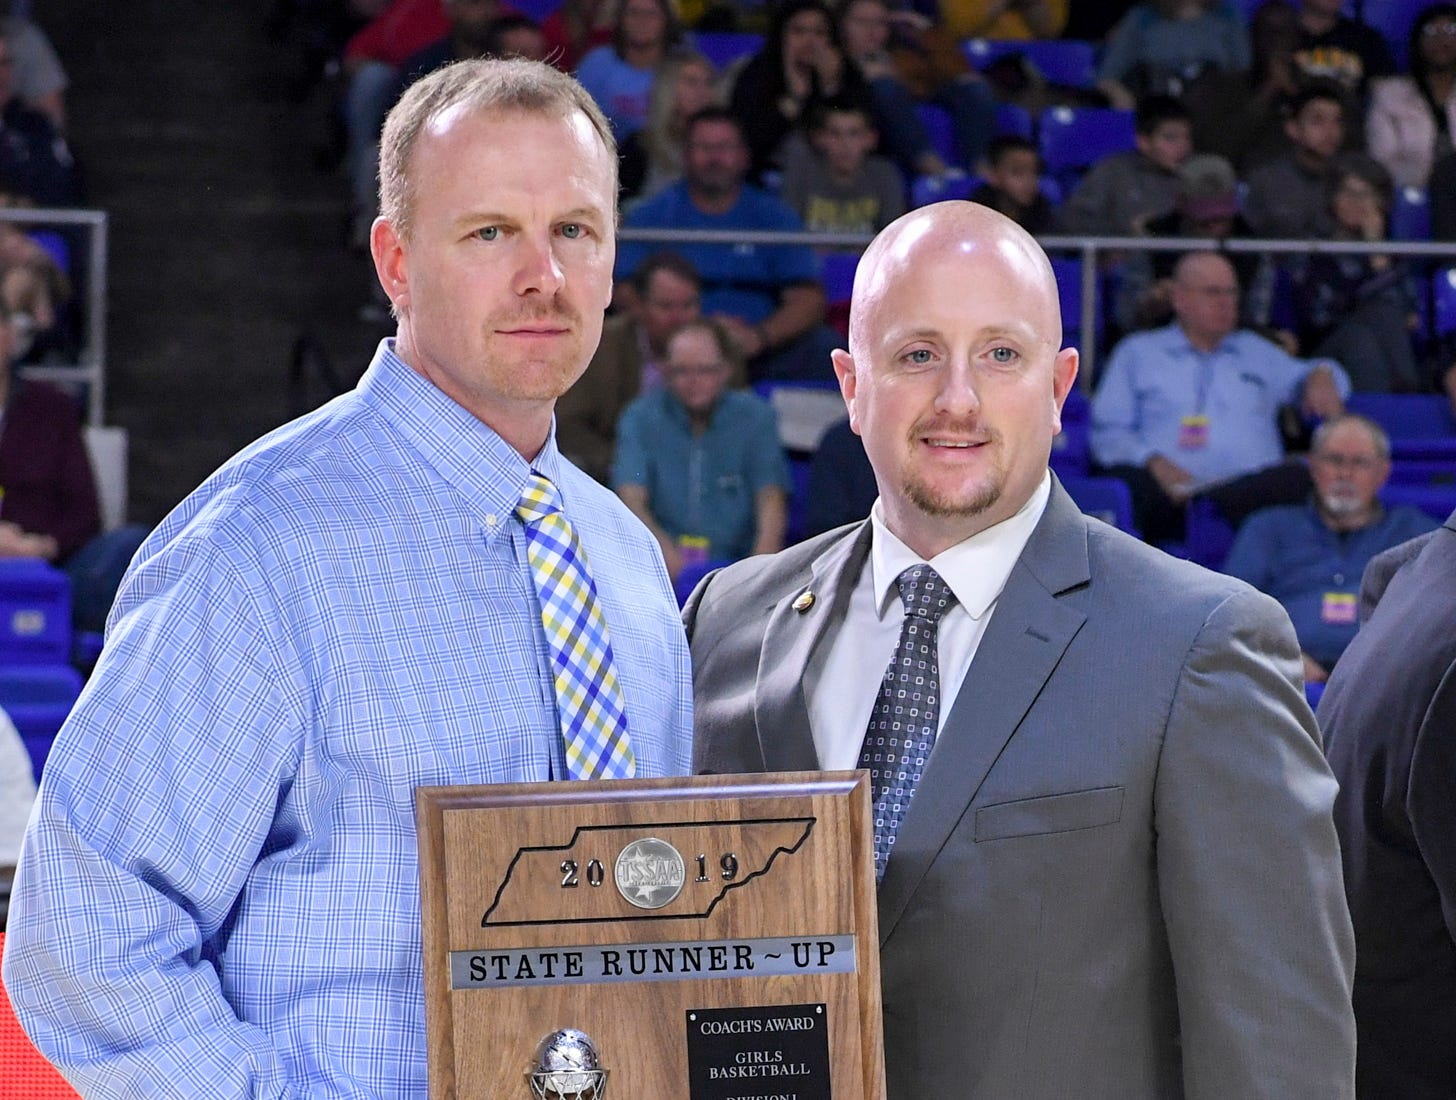 Westview's head coach Brian Haskins received the state runner-up coach's plaque at the end of their Class AA championship game, Saturday, March 9, 2019, in Murfreesboro. Westview fell to Cheatham County, 43-40.